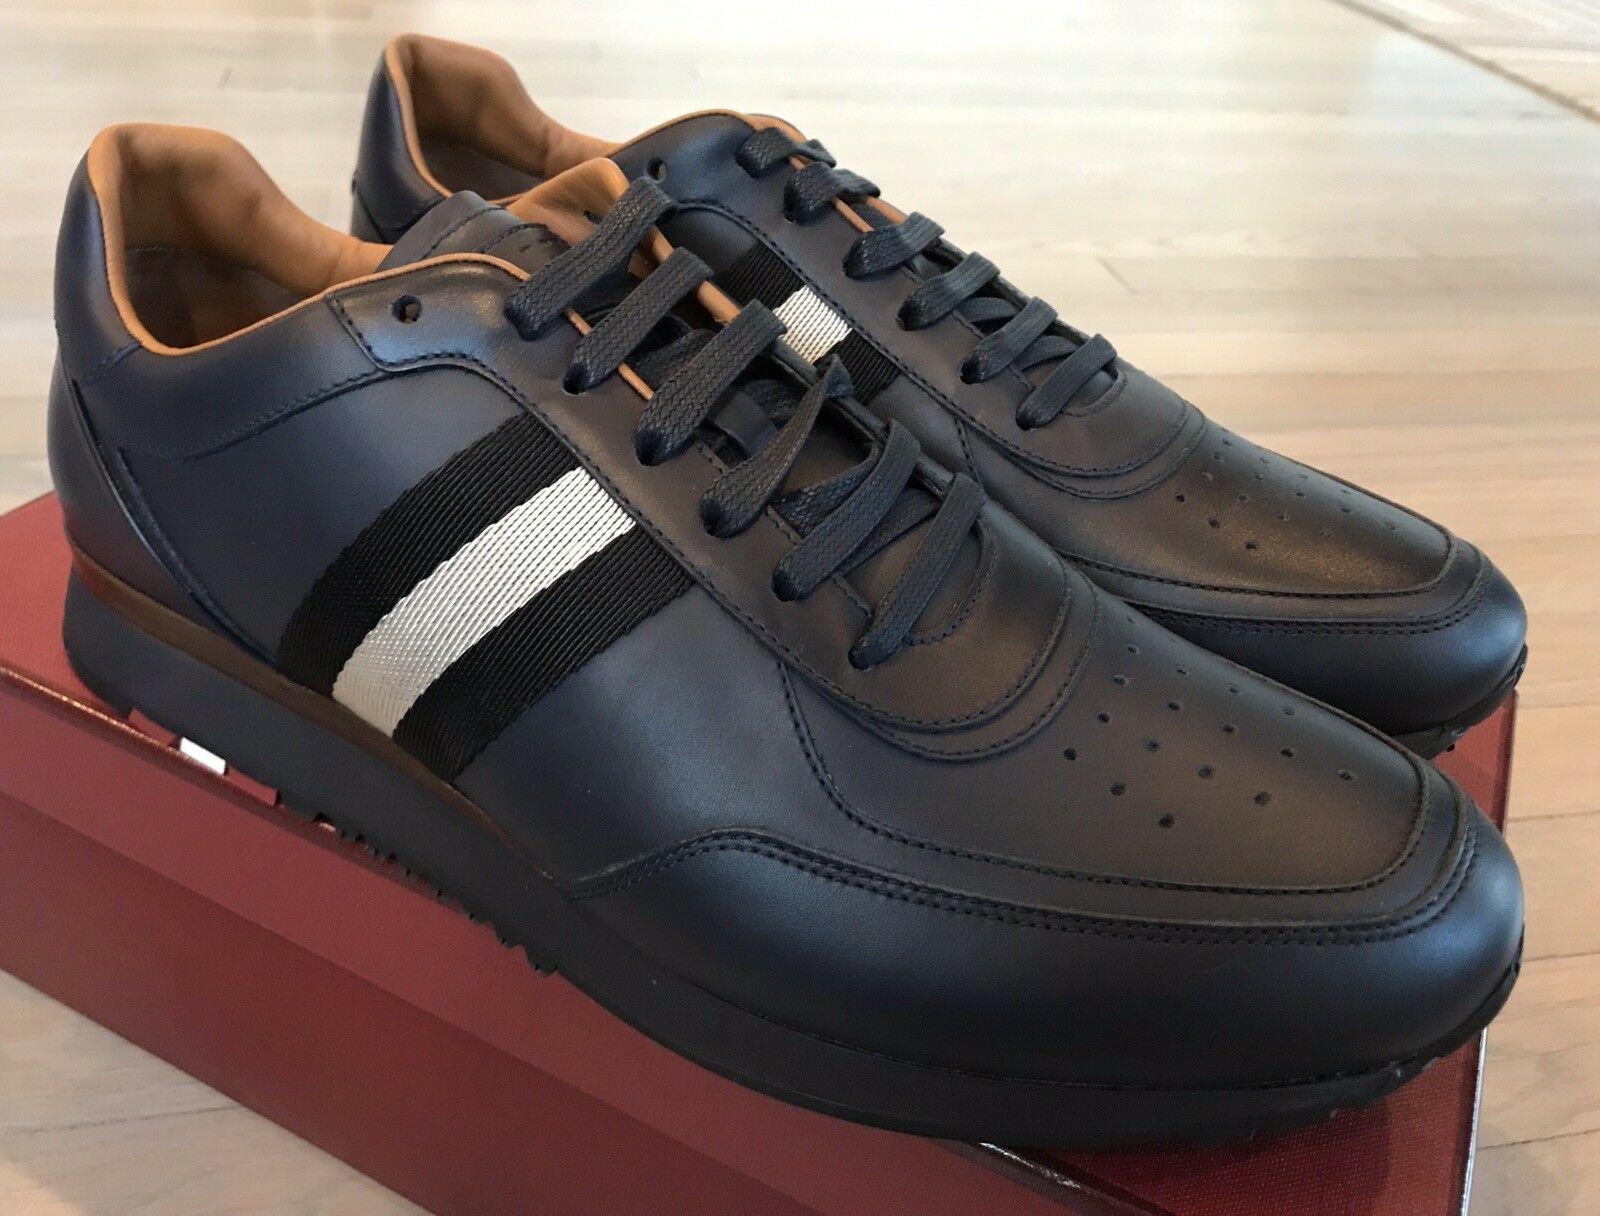 700  Bally Aston bluee Ink Leather Sneakers size US 13 Made Switzerland